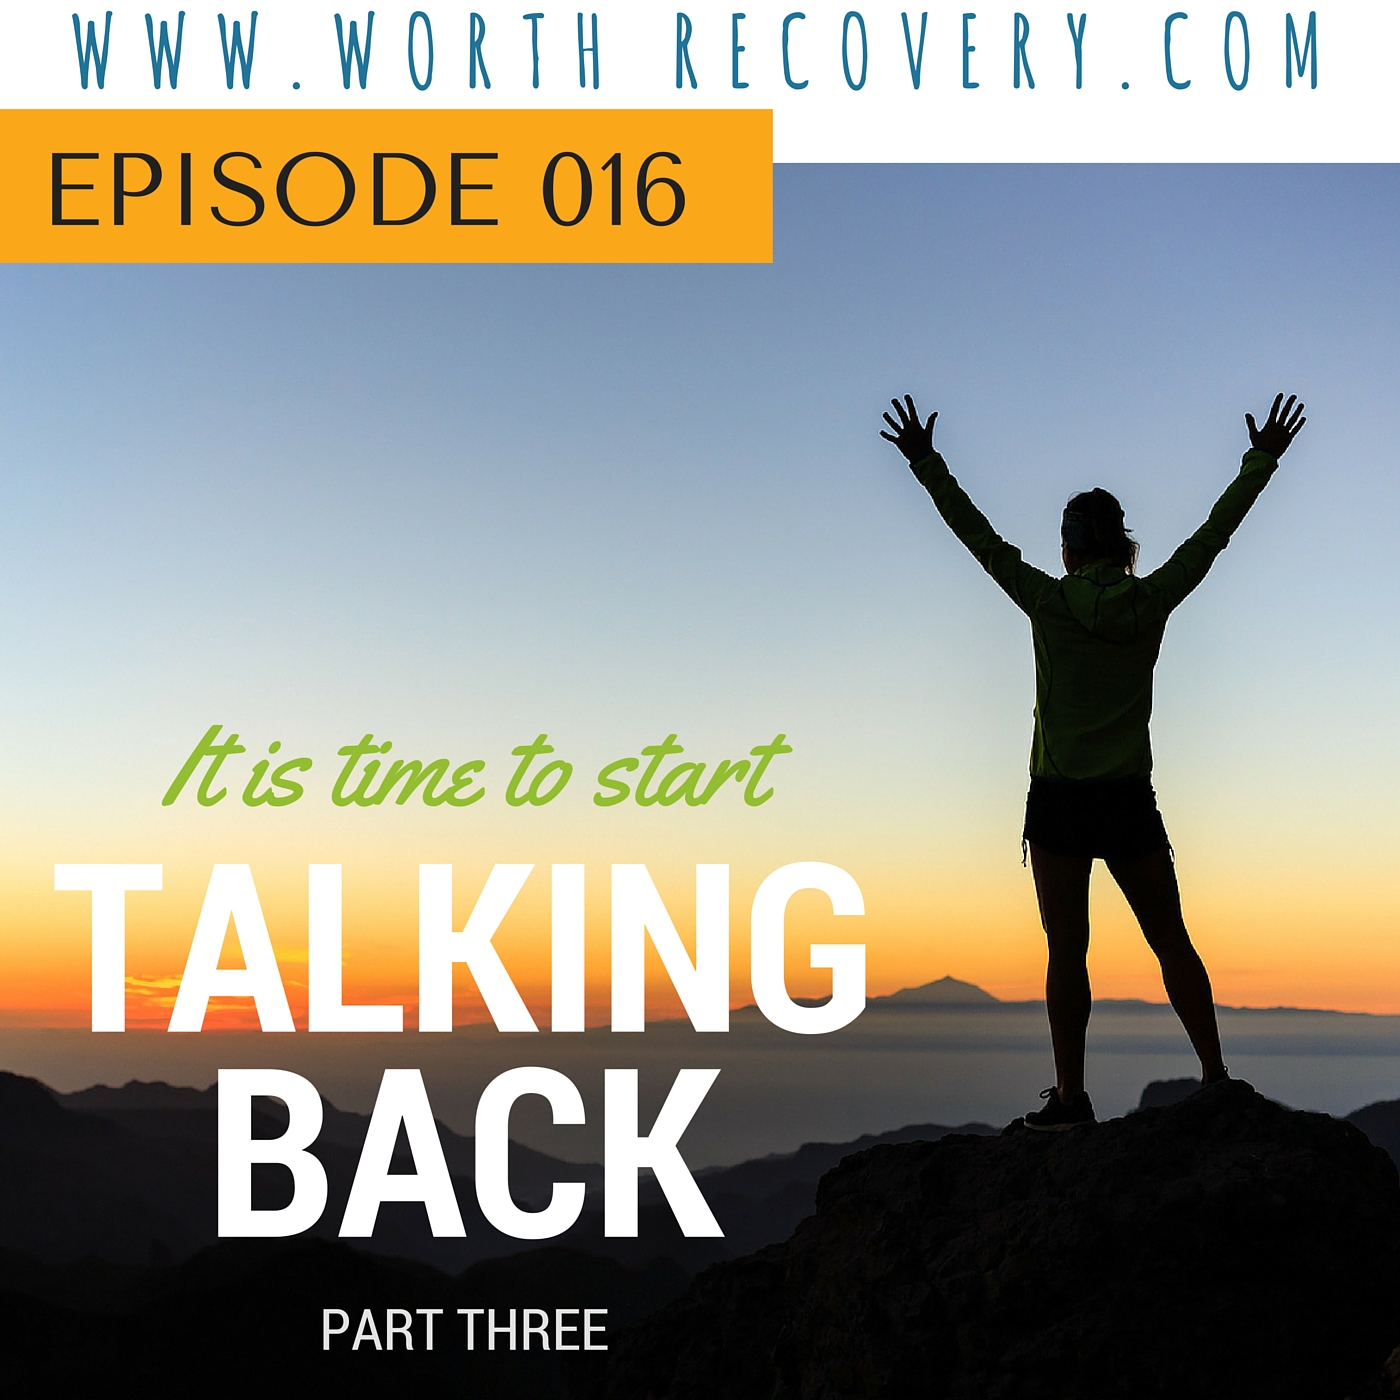 Ep 016: Talking Back Part 3